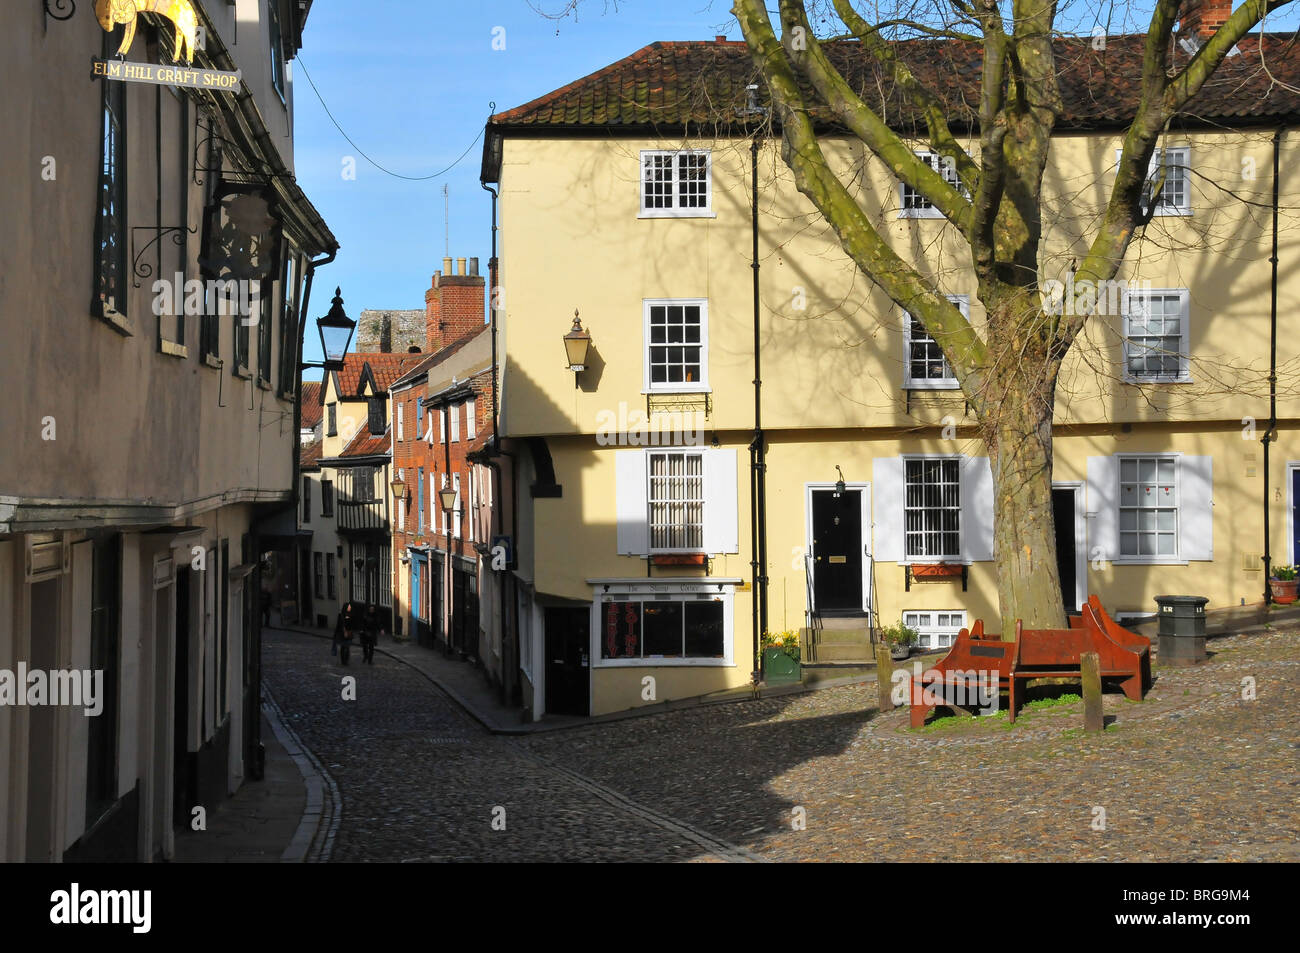 Cobbled street, Old Norwich - Stock Image